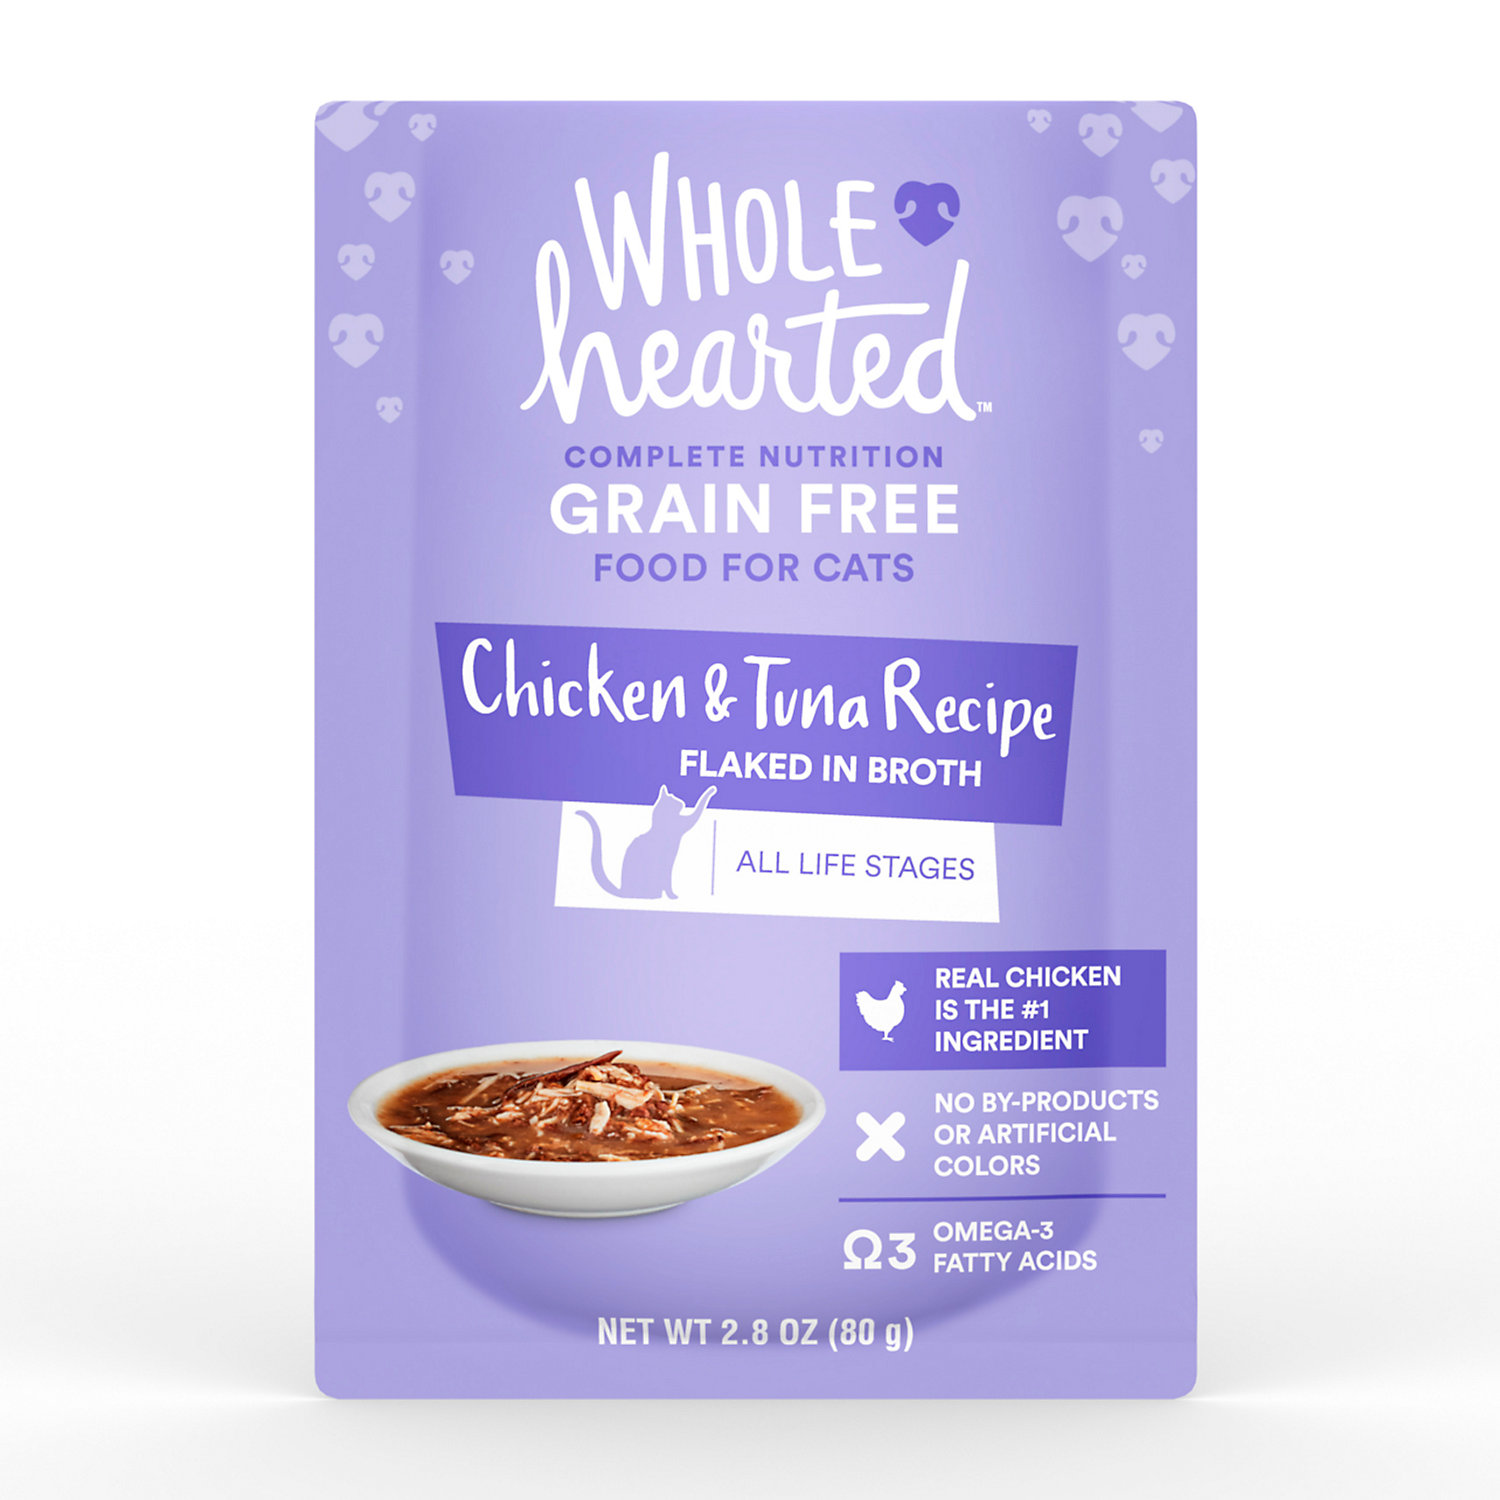 WholeHearted Grain Free Chicken Tuna Recipe Flaked In Broth Wet Cat Food - $8.28